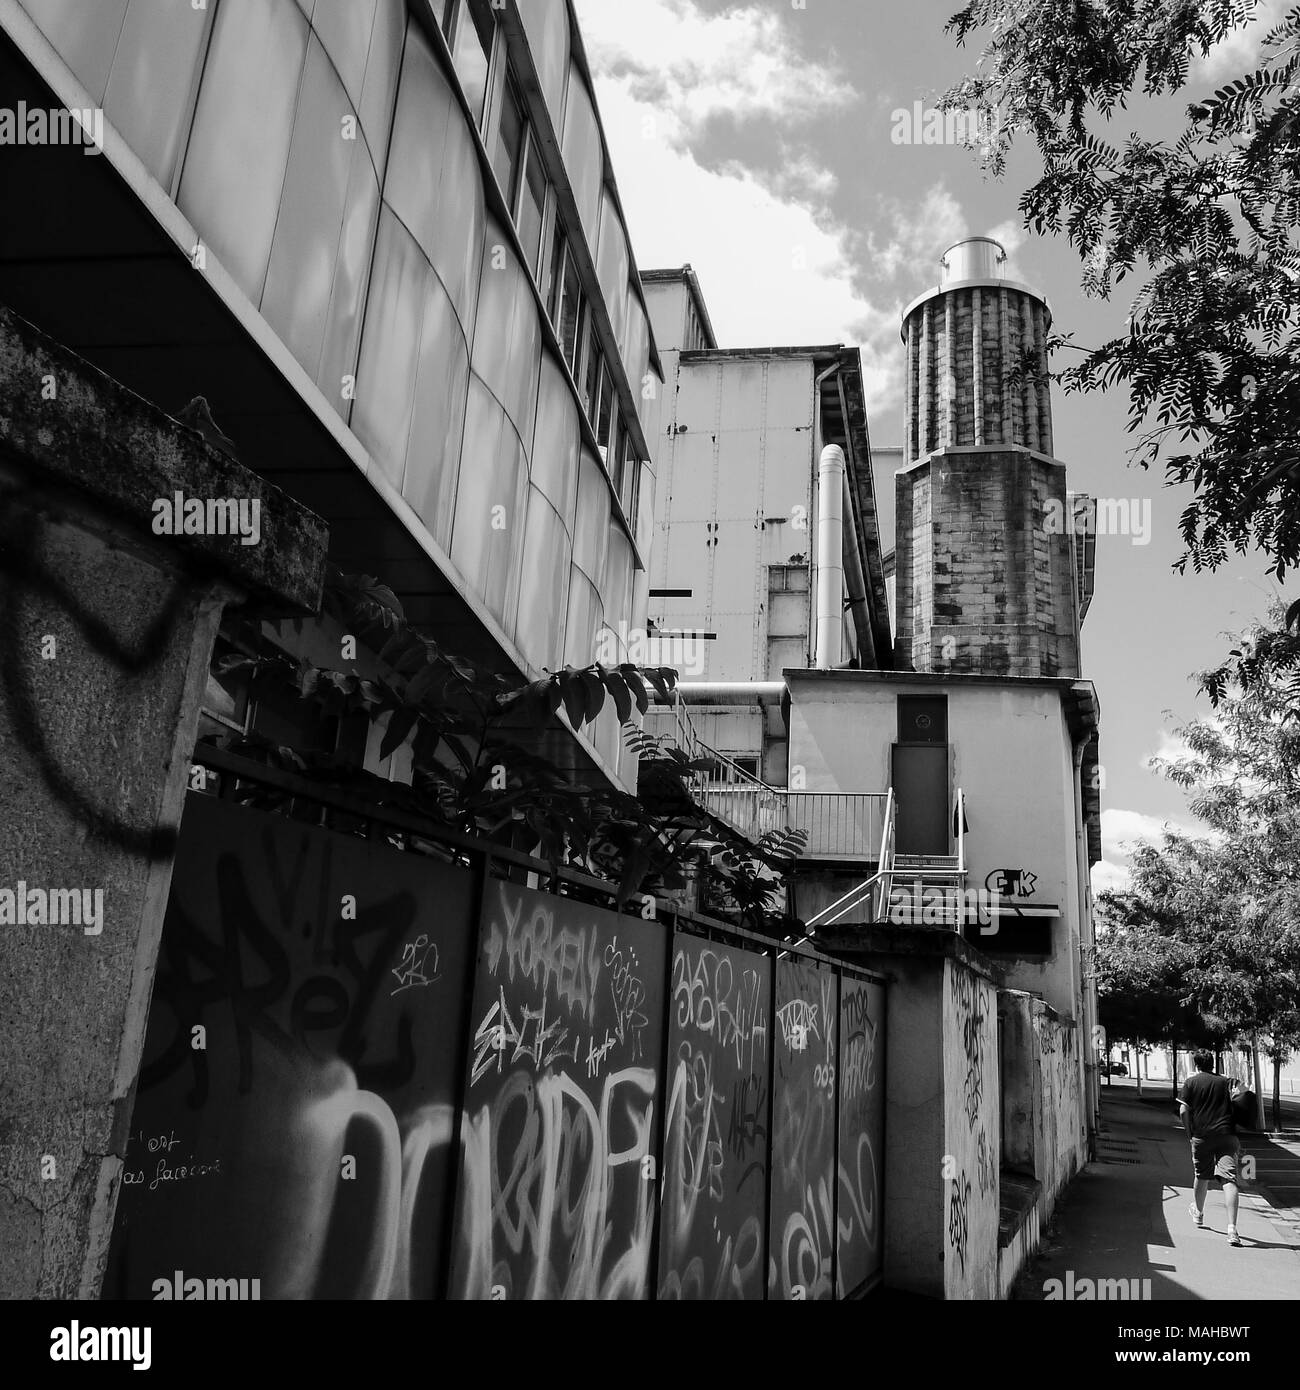 Blanche France Black And White Stock Photos Images Alamy